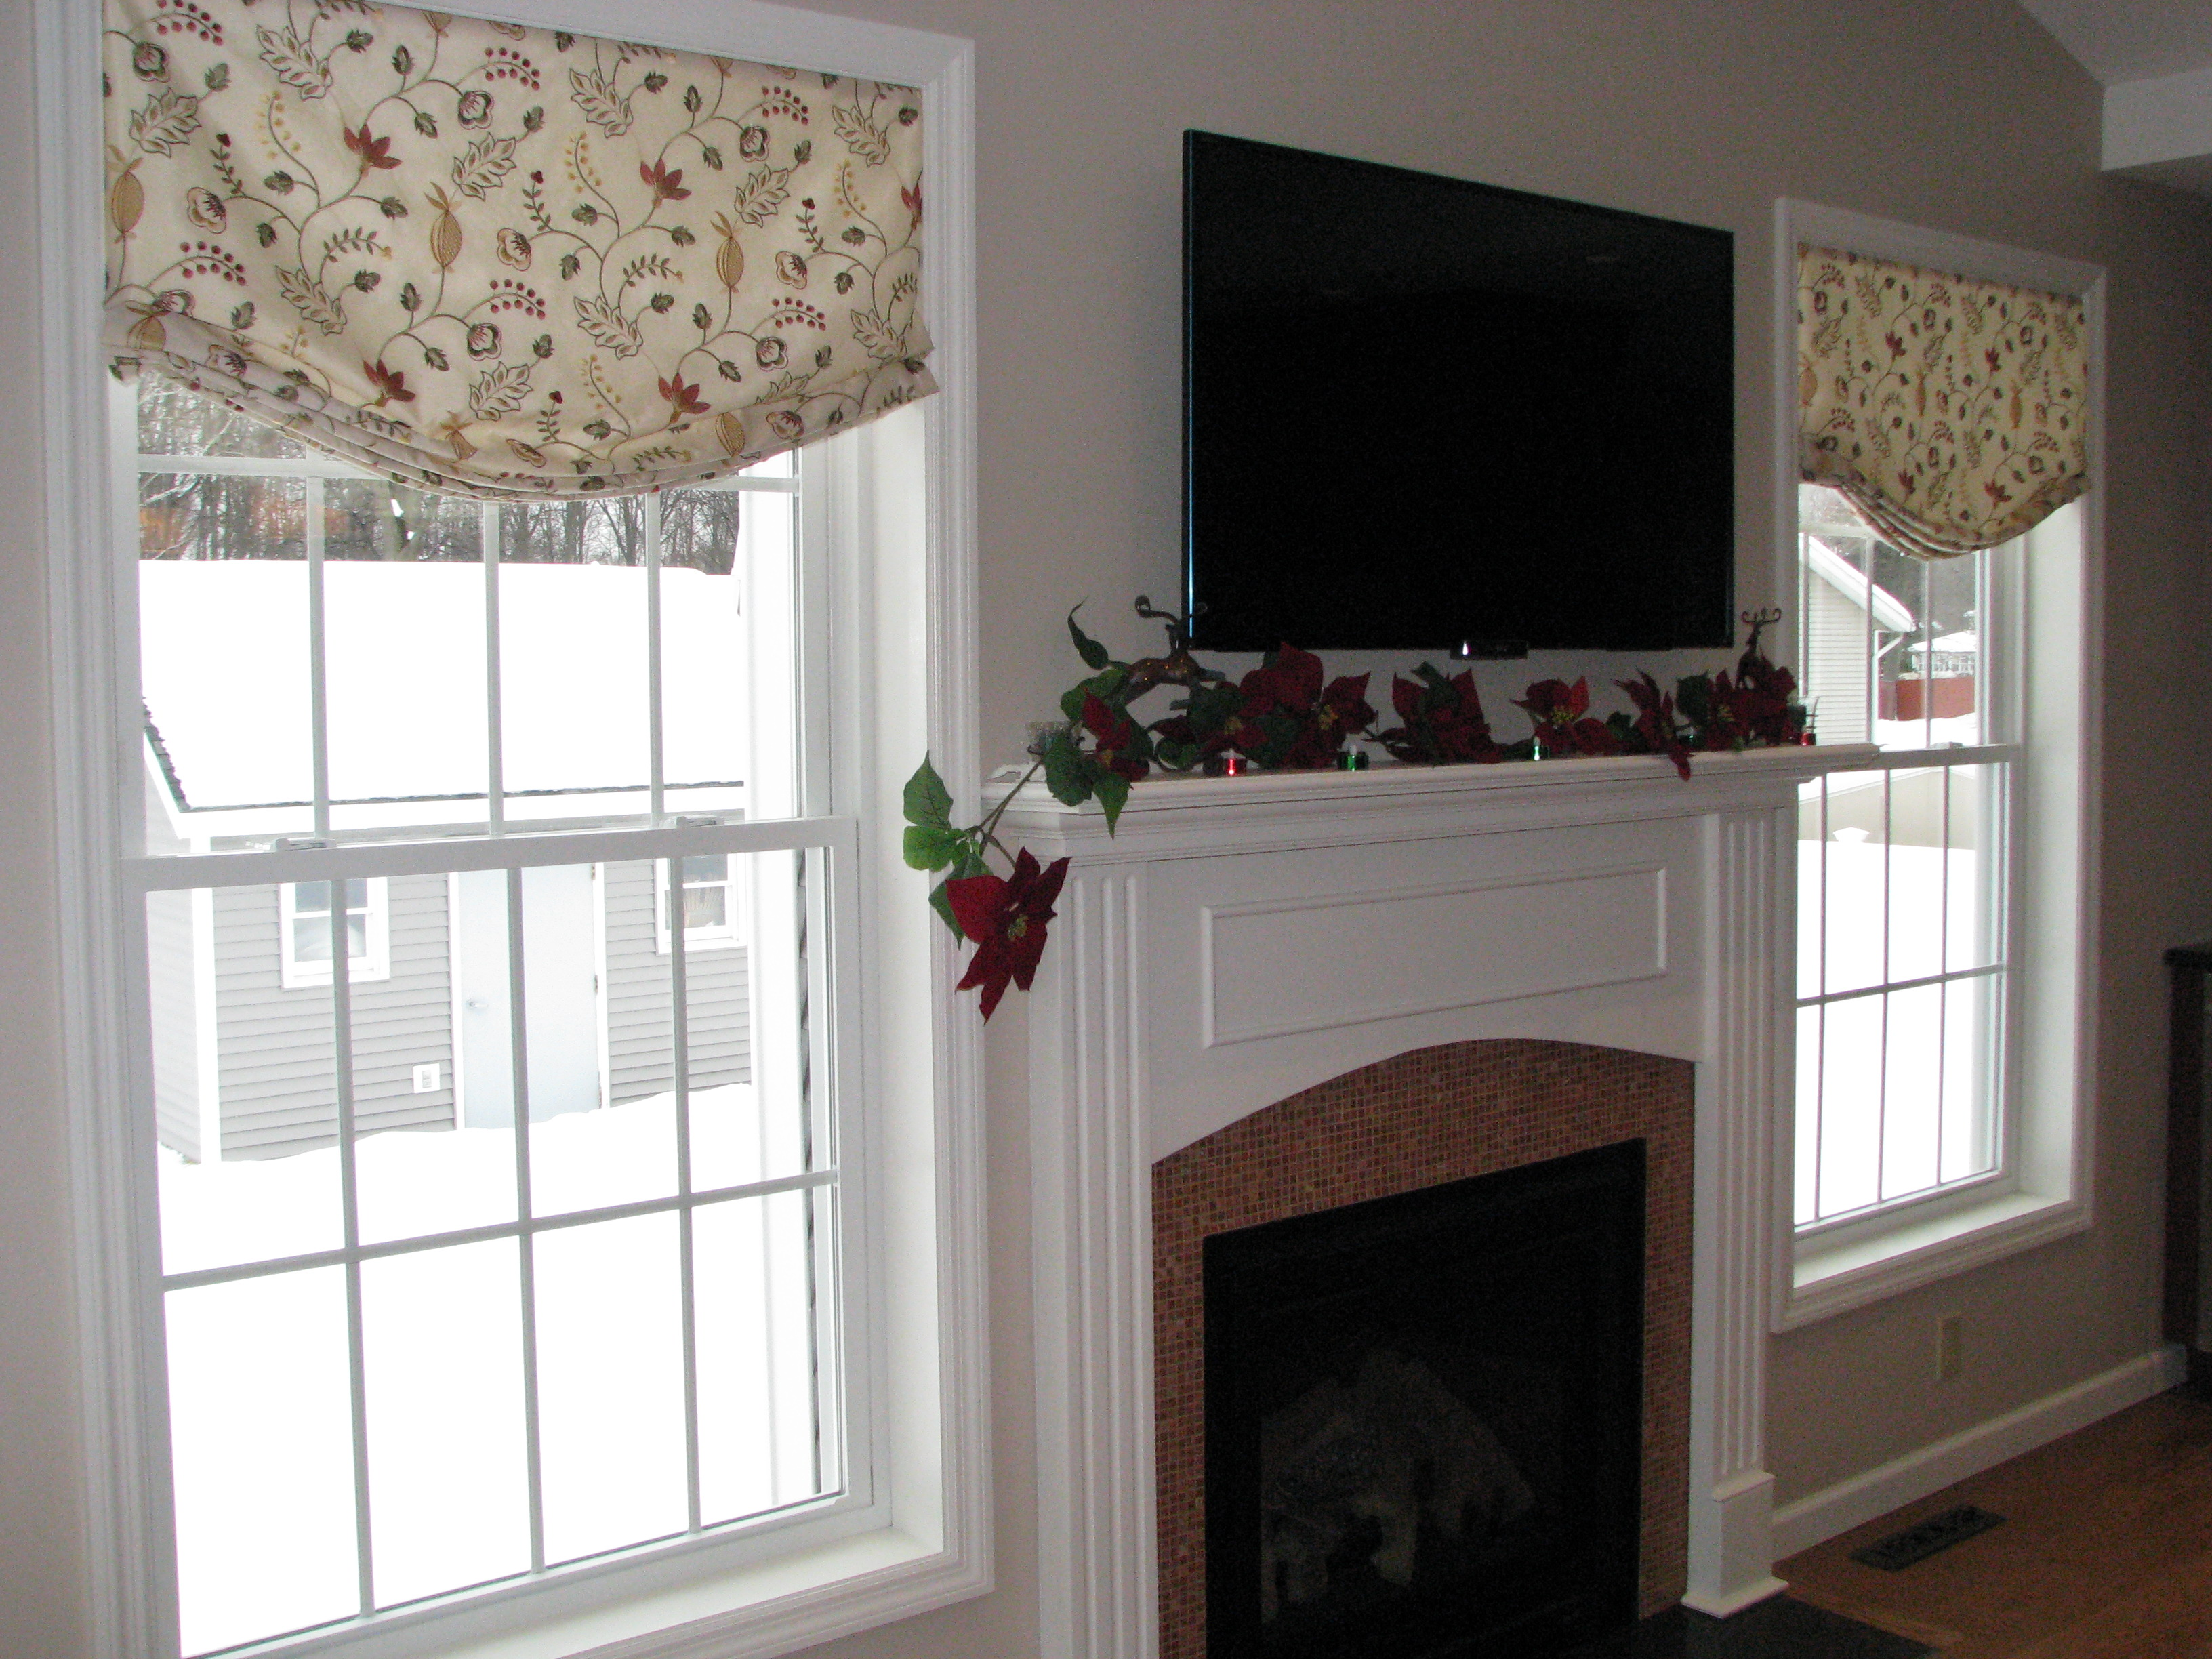 roman img no with a valance lining window shades savalan and decor sheer fabric flat